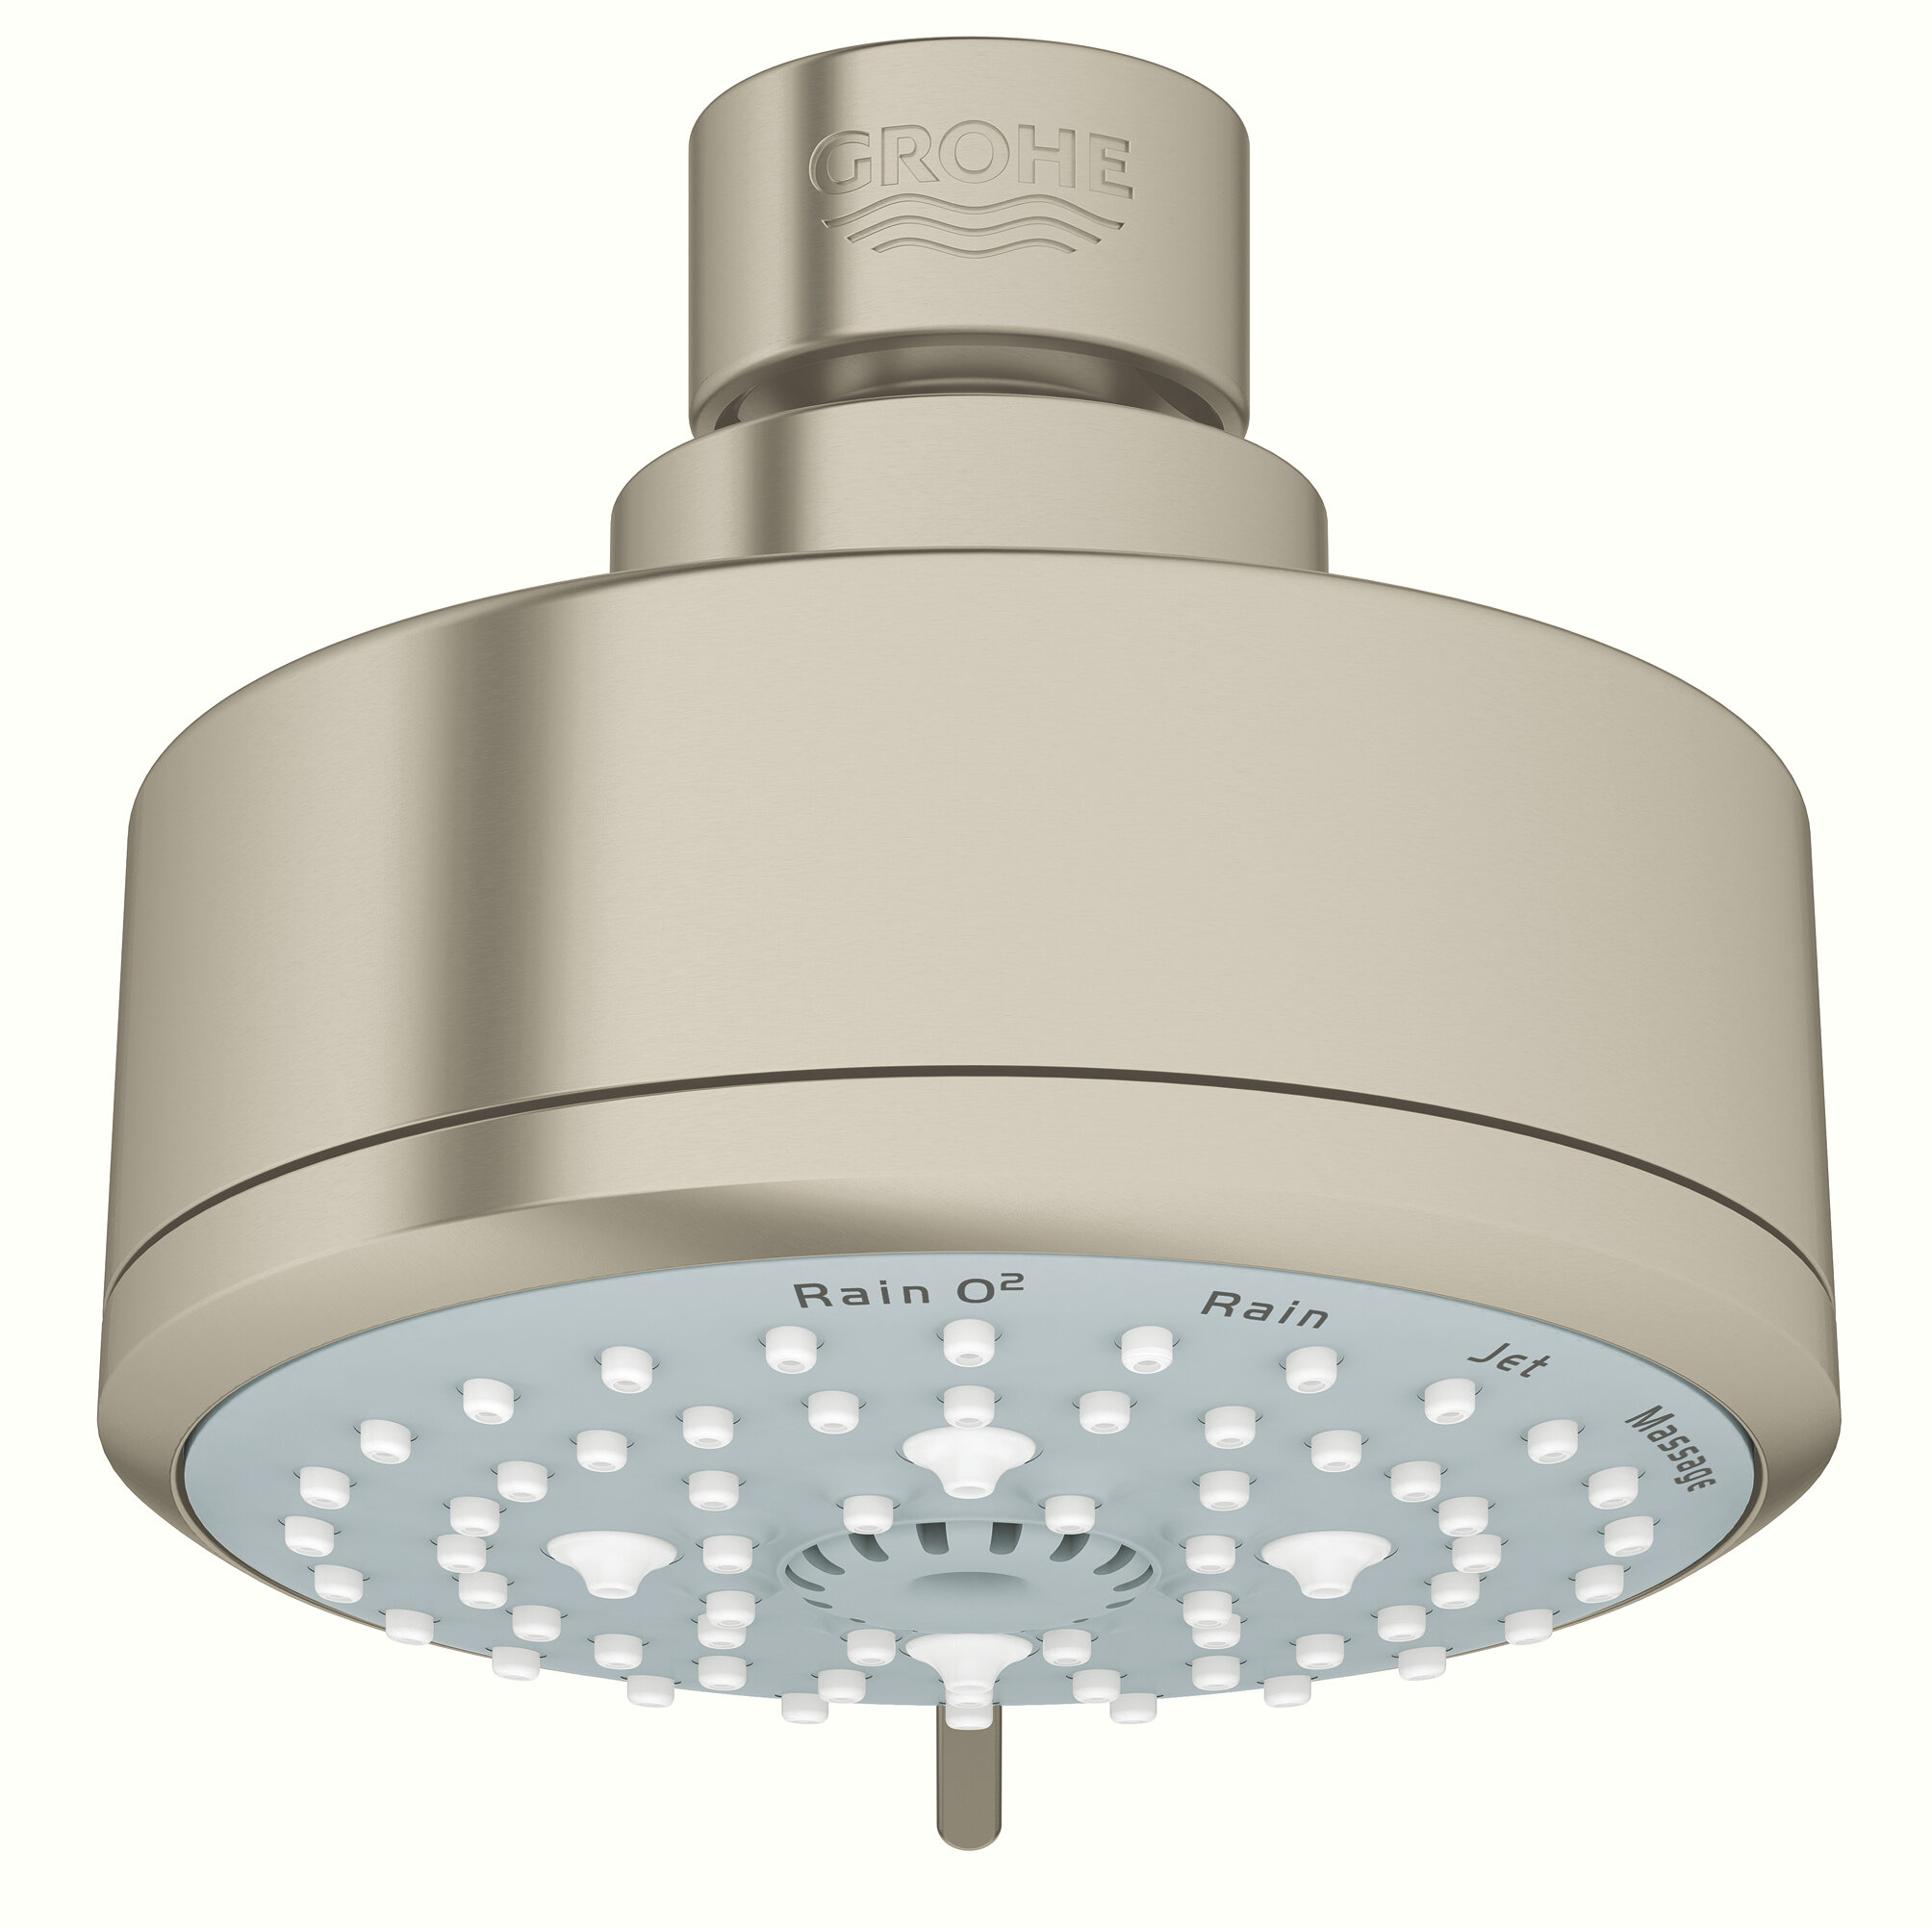 Tempesta Rain Adjustable Shower Head With Speedclean Nozzles